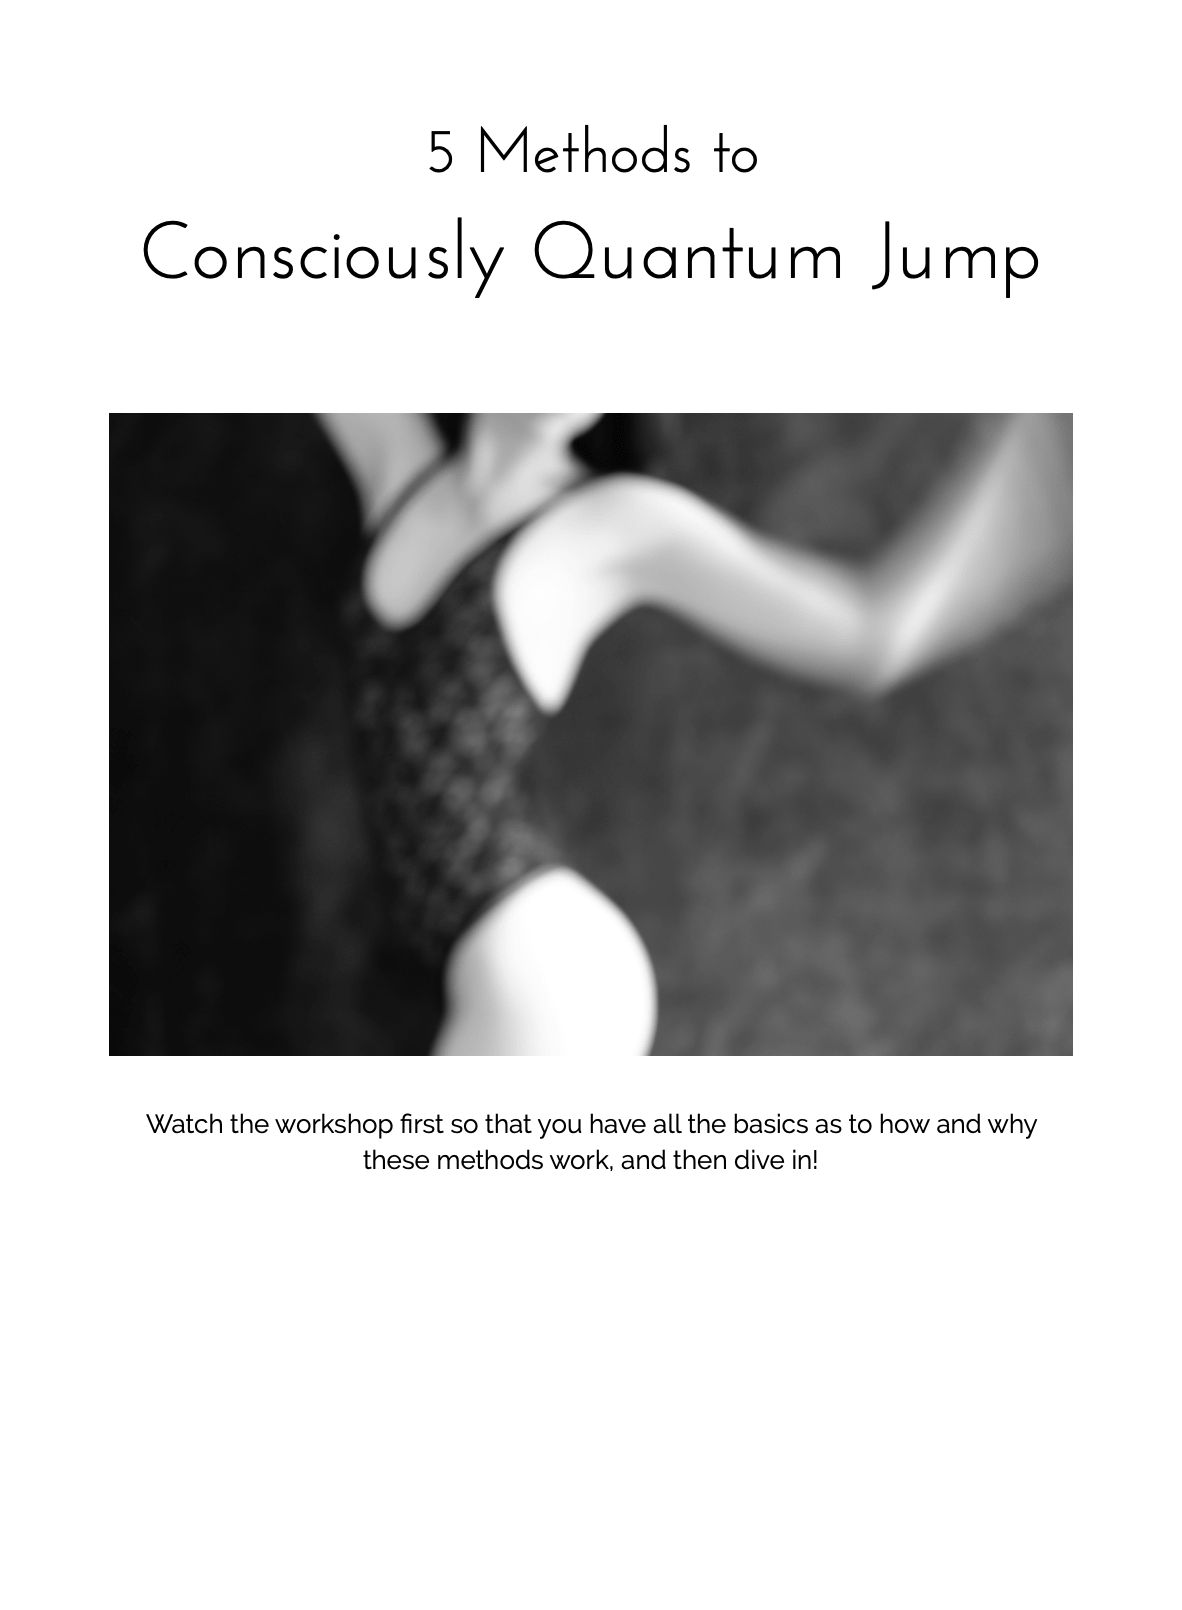 5 Methods - to consciously Quantum Jump